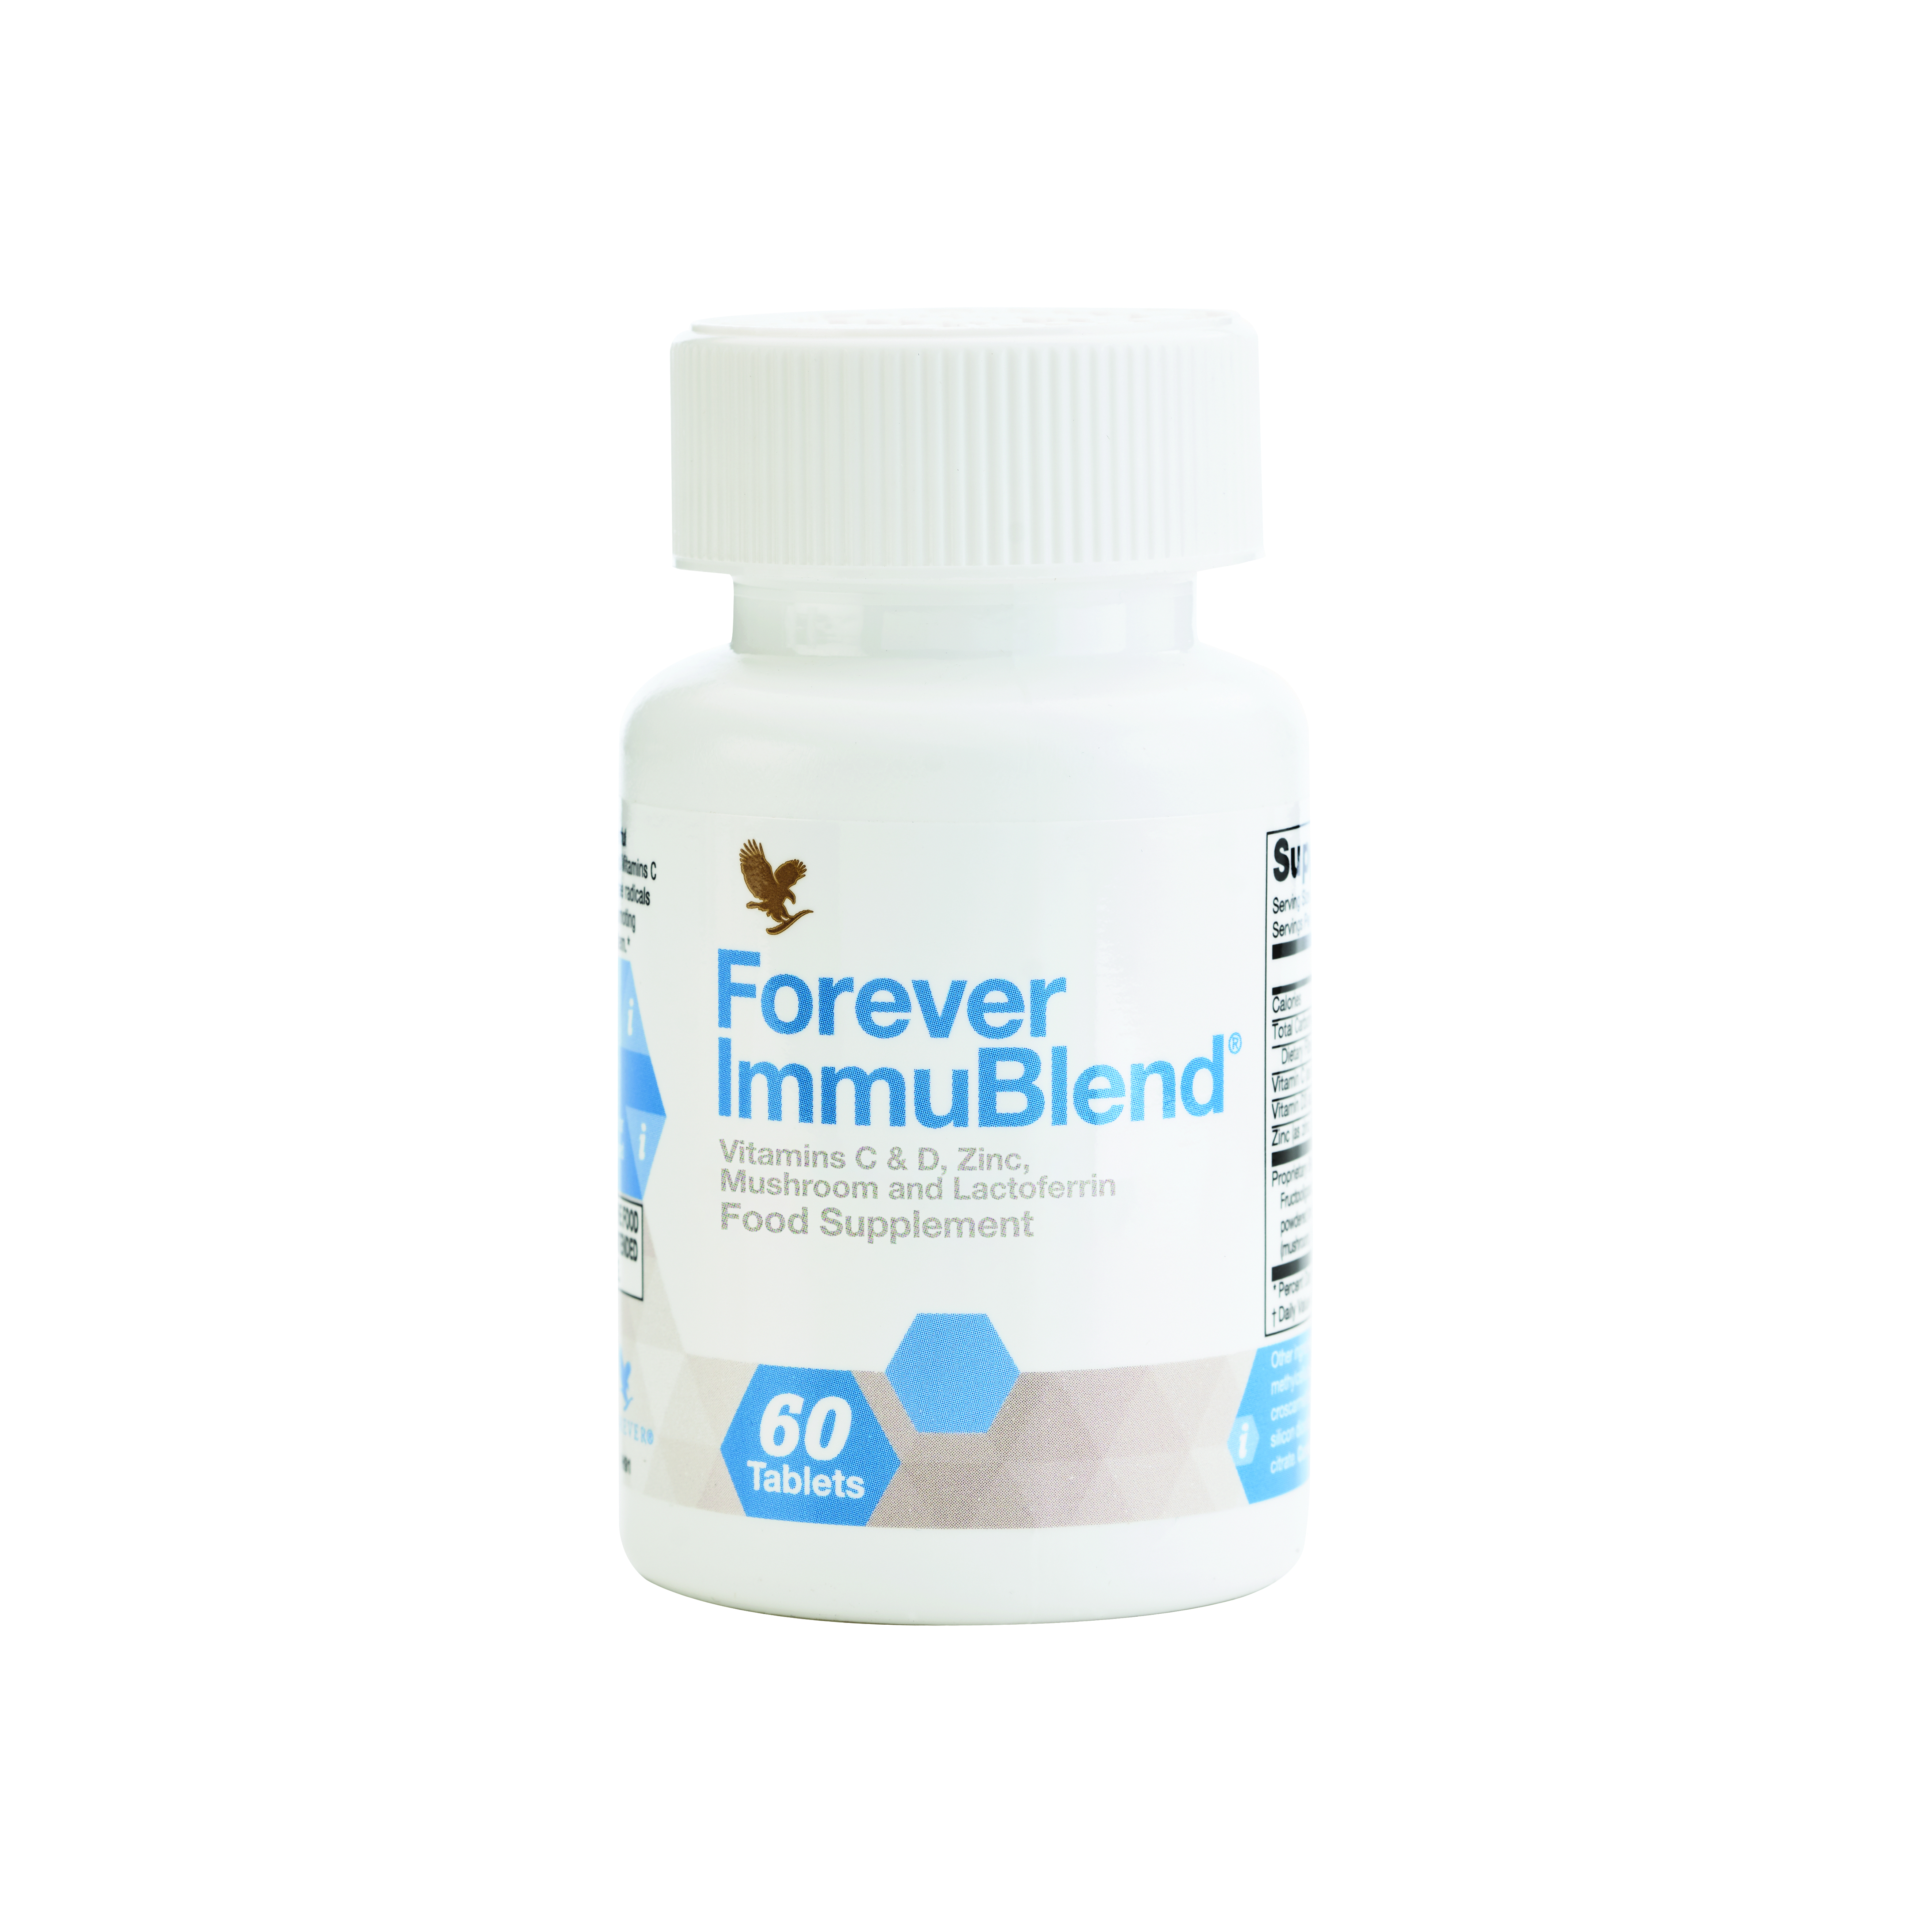 Help support the body's defence system with Forever Immublend. This supplement is high in vitamin C, D and zinc, all of which contribute to the normal function of the immune system.